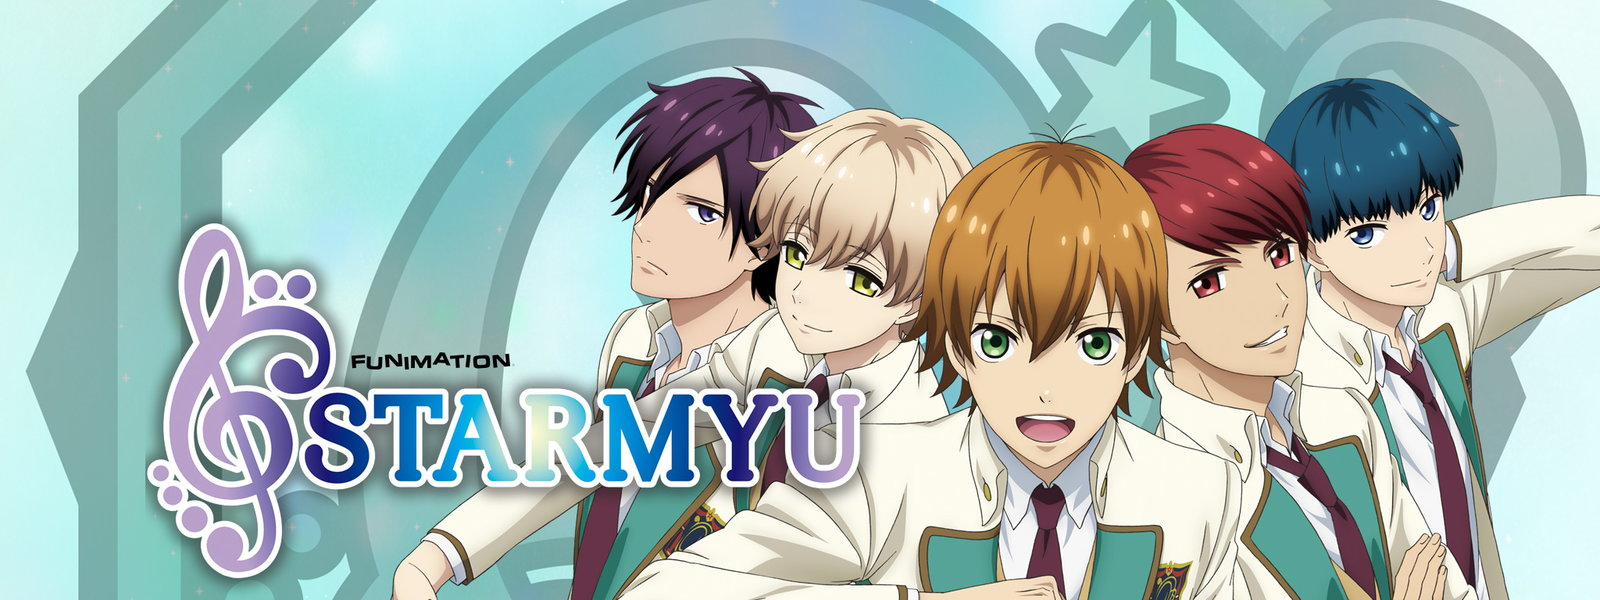 Fall In Love Couples Wallpapers Starmyu Episodes 1 5 Fall Shoujo Anime Review Heart Of Manga